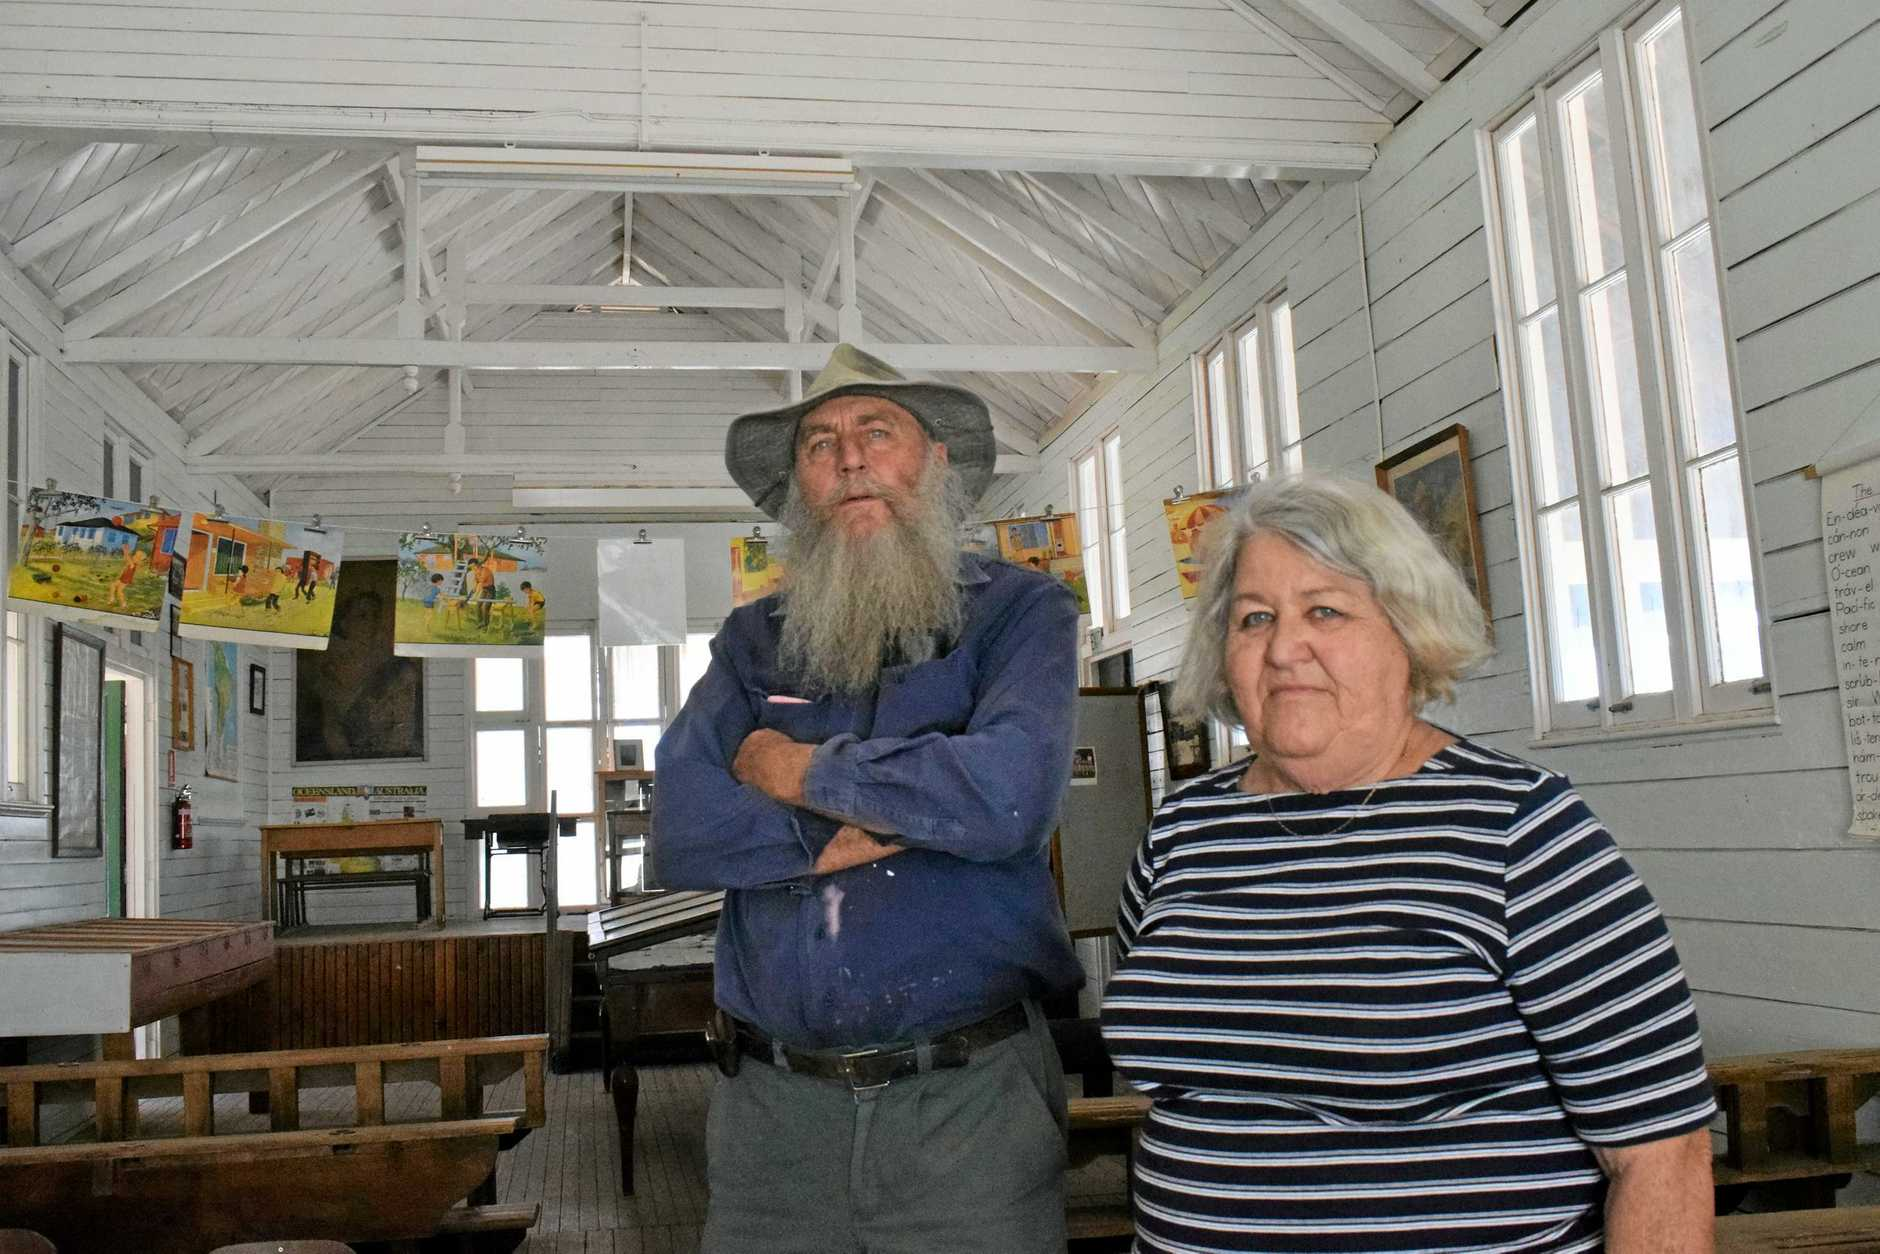 WRONGED: Chinchilla Historical Museum caretaker Oscar Lawrence and volunteer Joan Hubbard, pictured in the broken-in original Chinchilla State School, are disappointed in the recent museum theft.